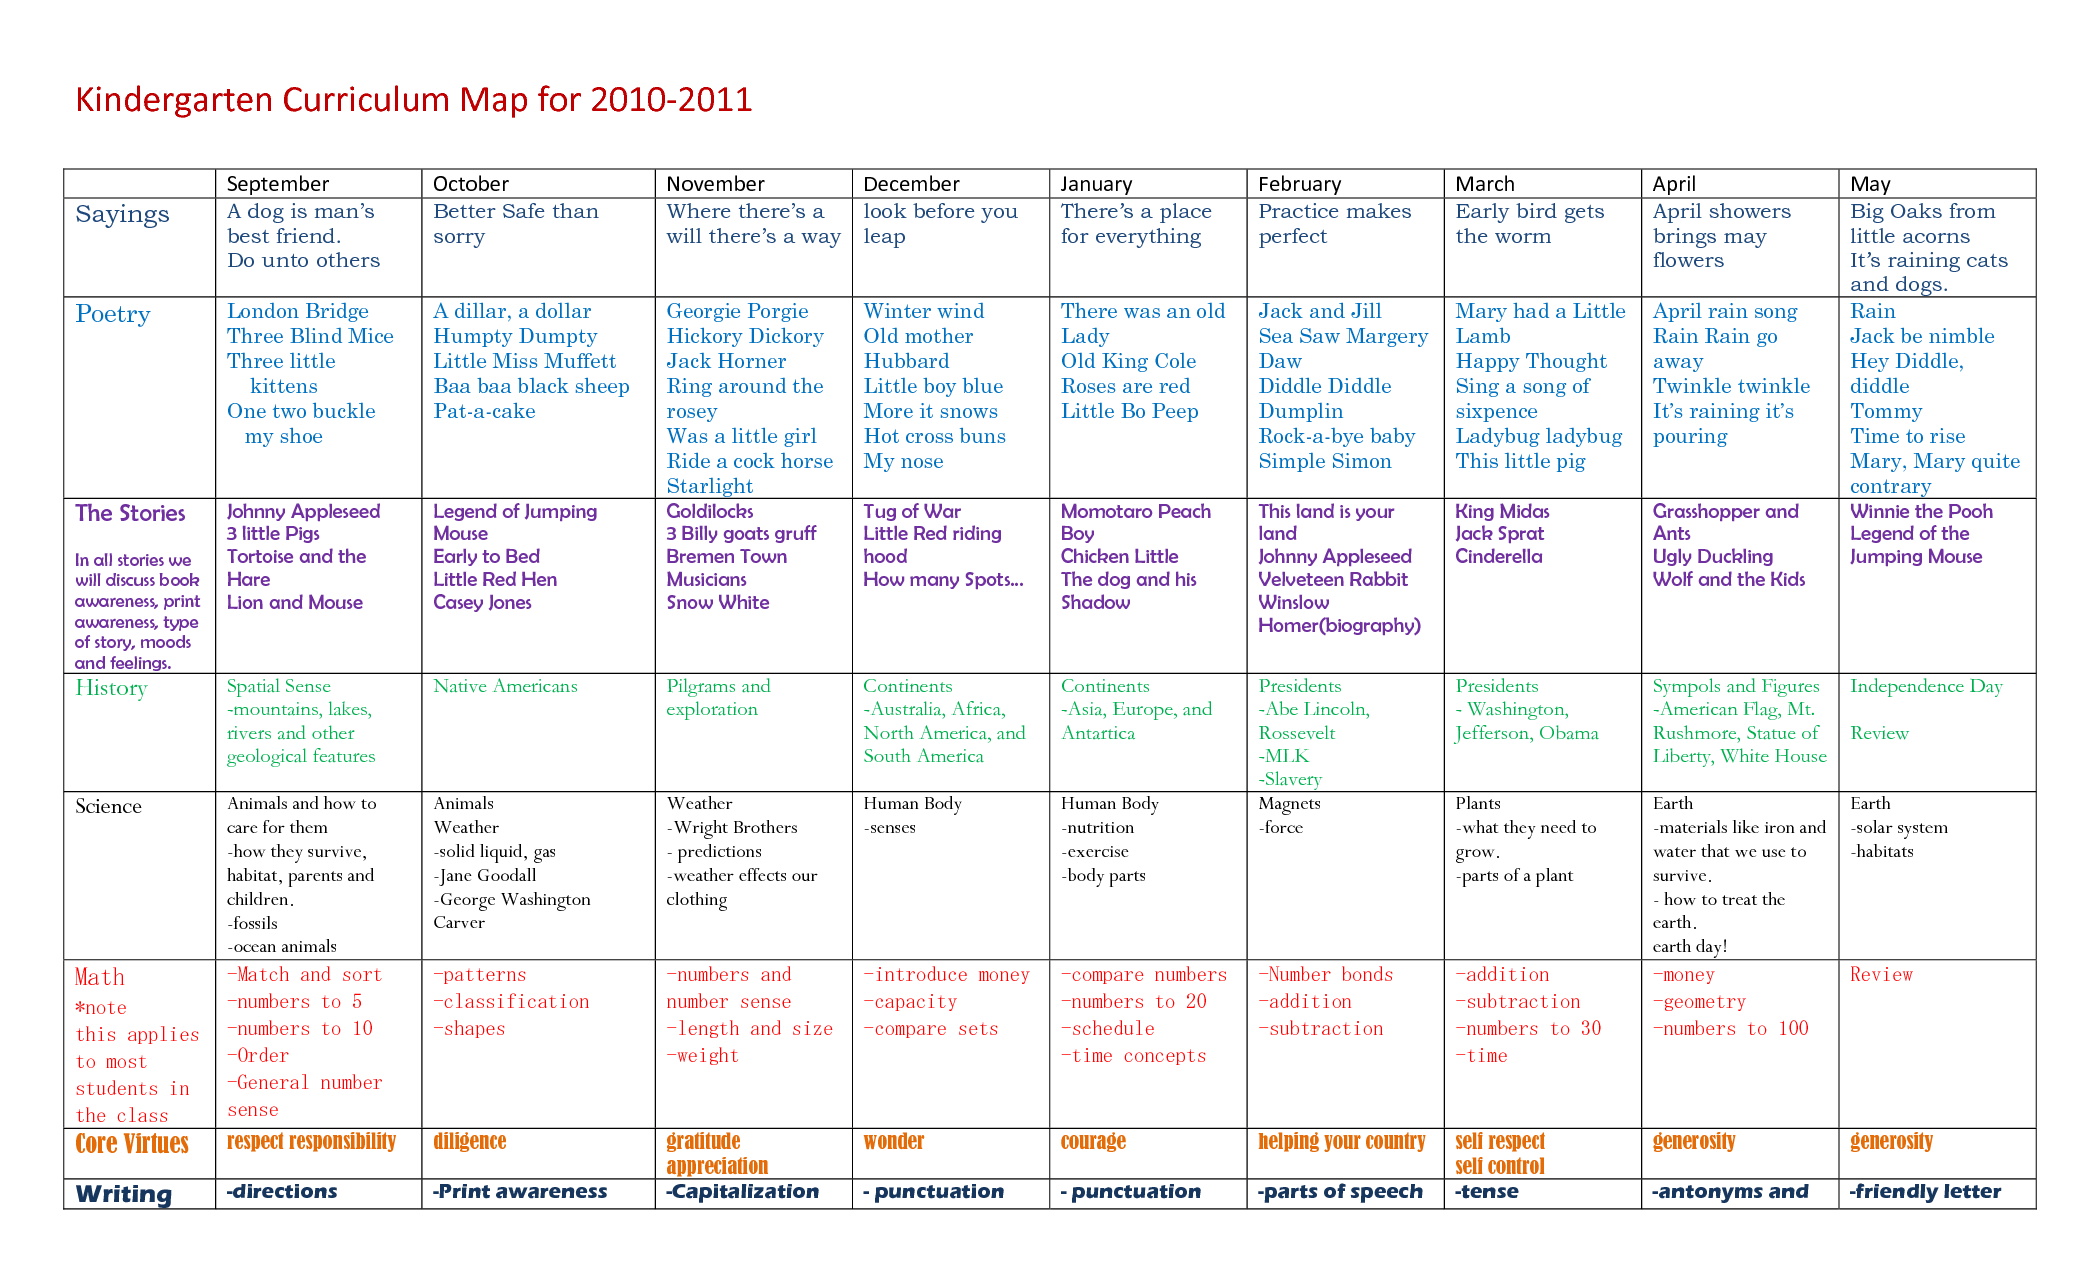 kindergarten curriculum map template - kindergarten curriculum kindergarten curriculum map for